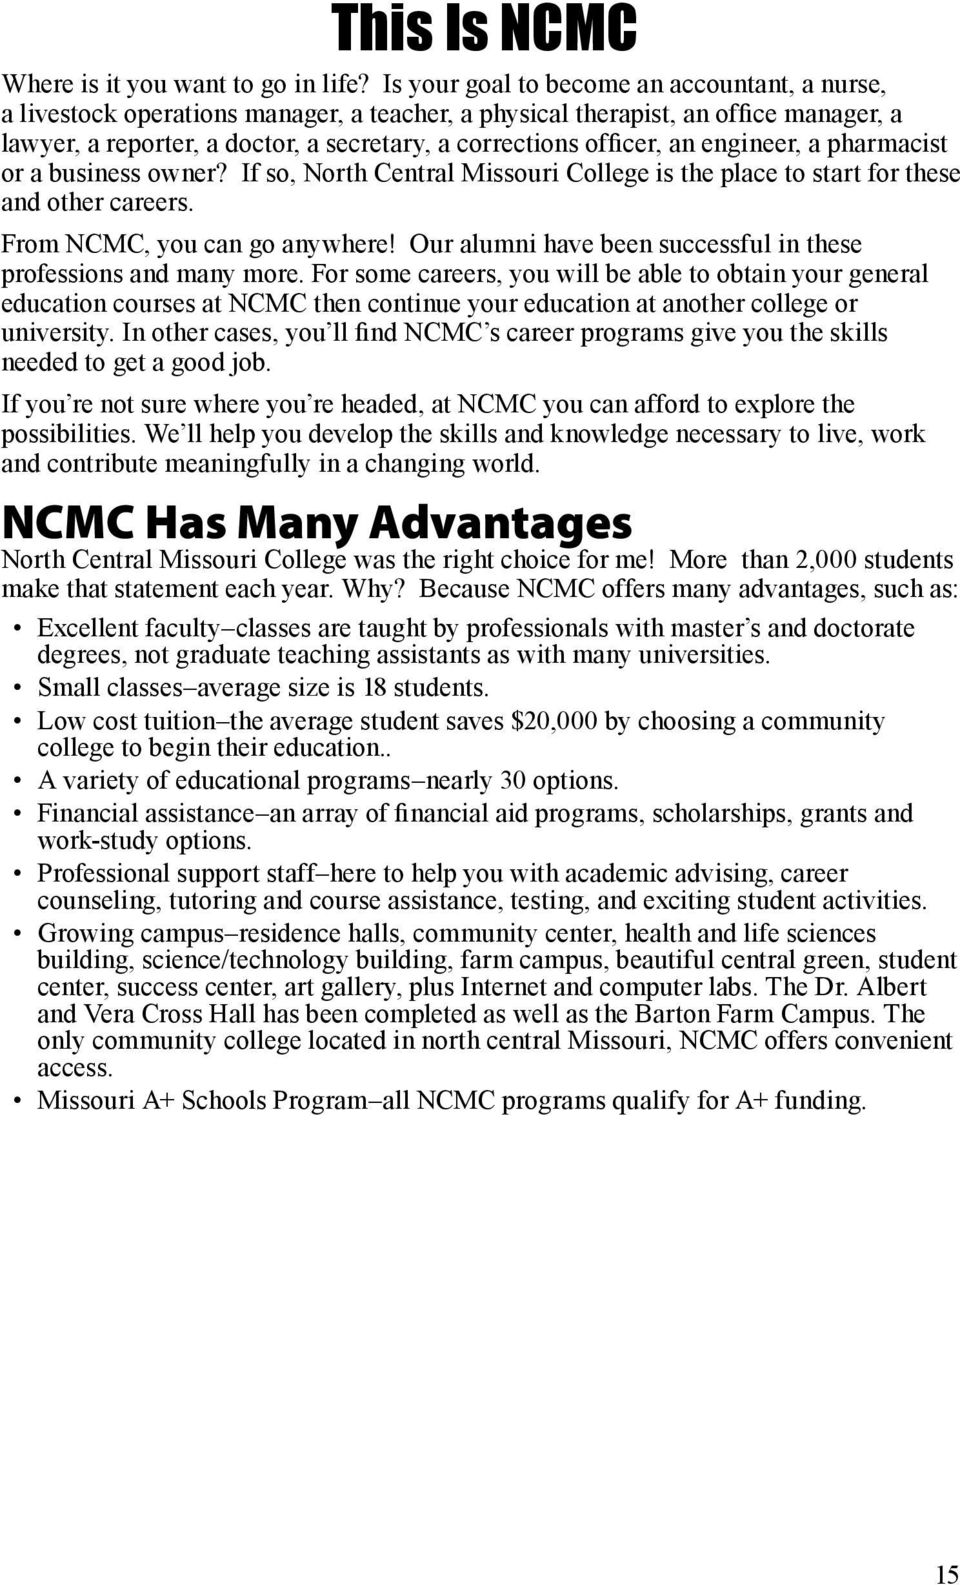 an engineer, a pharmacist or a business owner? If so, North Central Missouri College is the place to start for these and other careers. From NCMC, you can go anywhere!